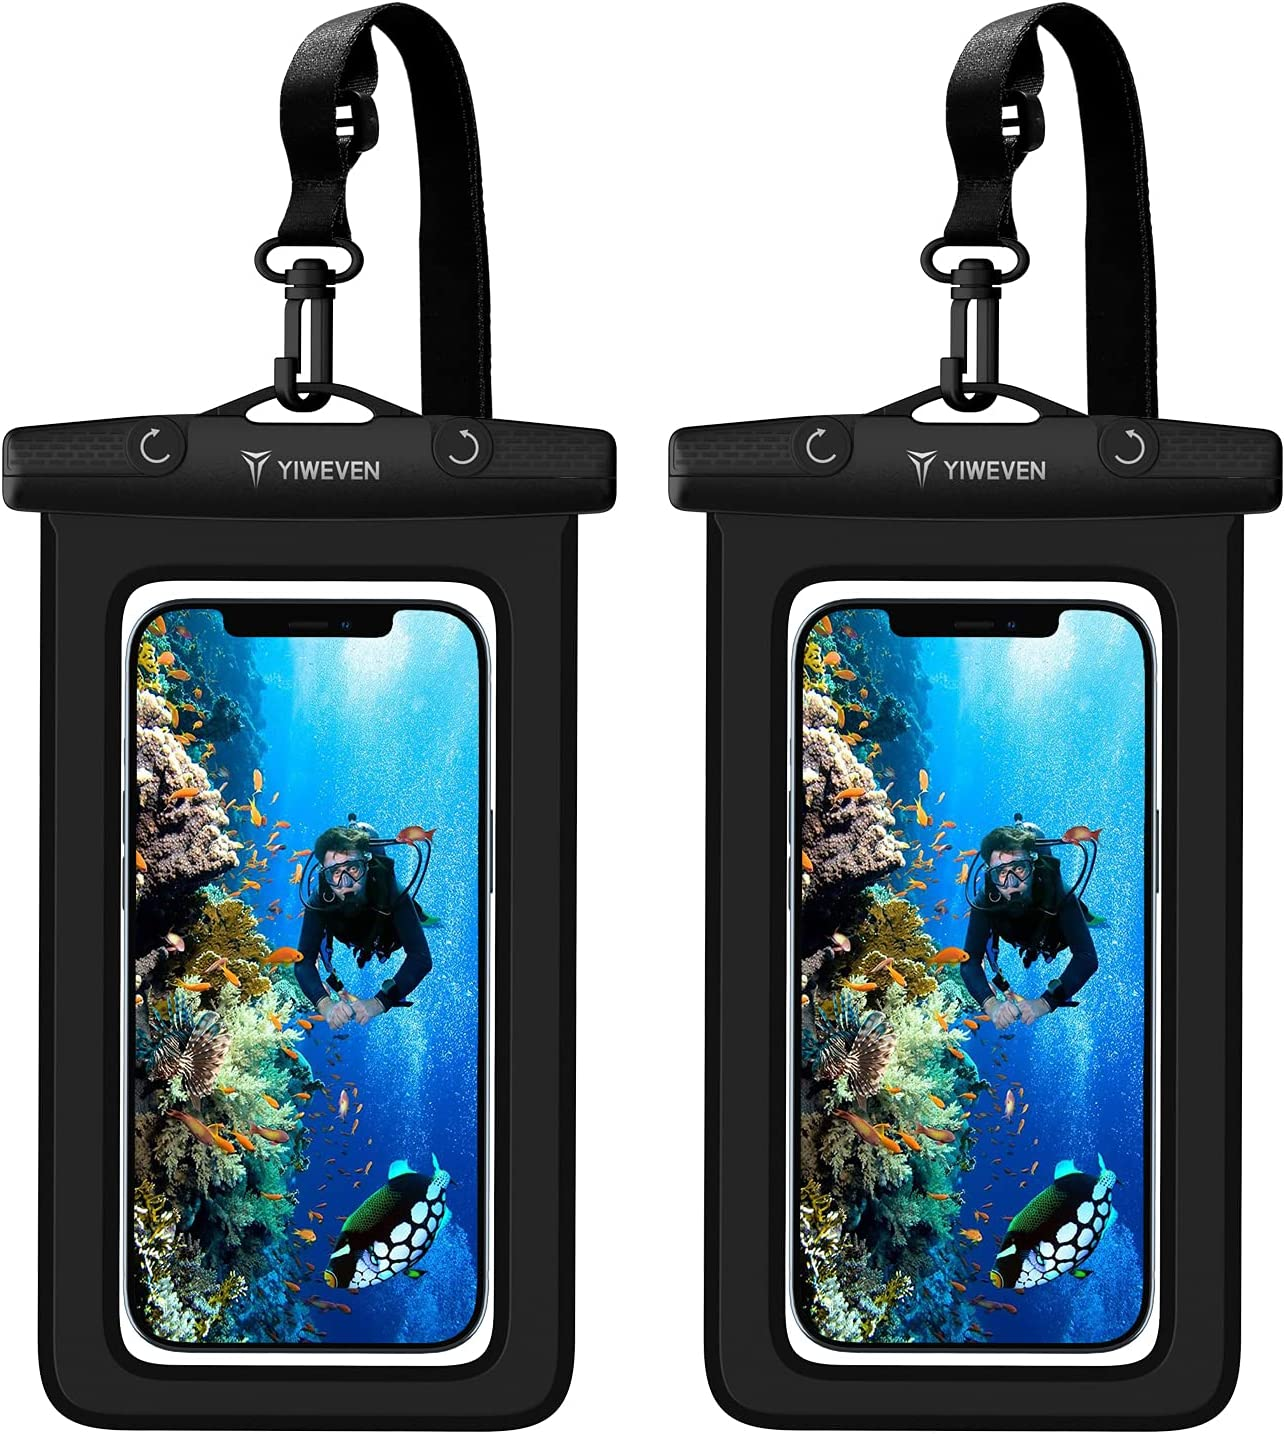 YIWEVEN Waterproof Phone Case, [2 Pack] IPX8 Universal Water-Proof Pouch Cellphone Dry Bag for iPhone 12 Pro Max/11/XR/XS/SE 2020/7/8/Samsung Galaxy/Moto/Google/Blu and More up to 7 inch